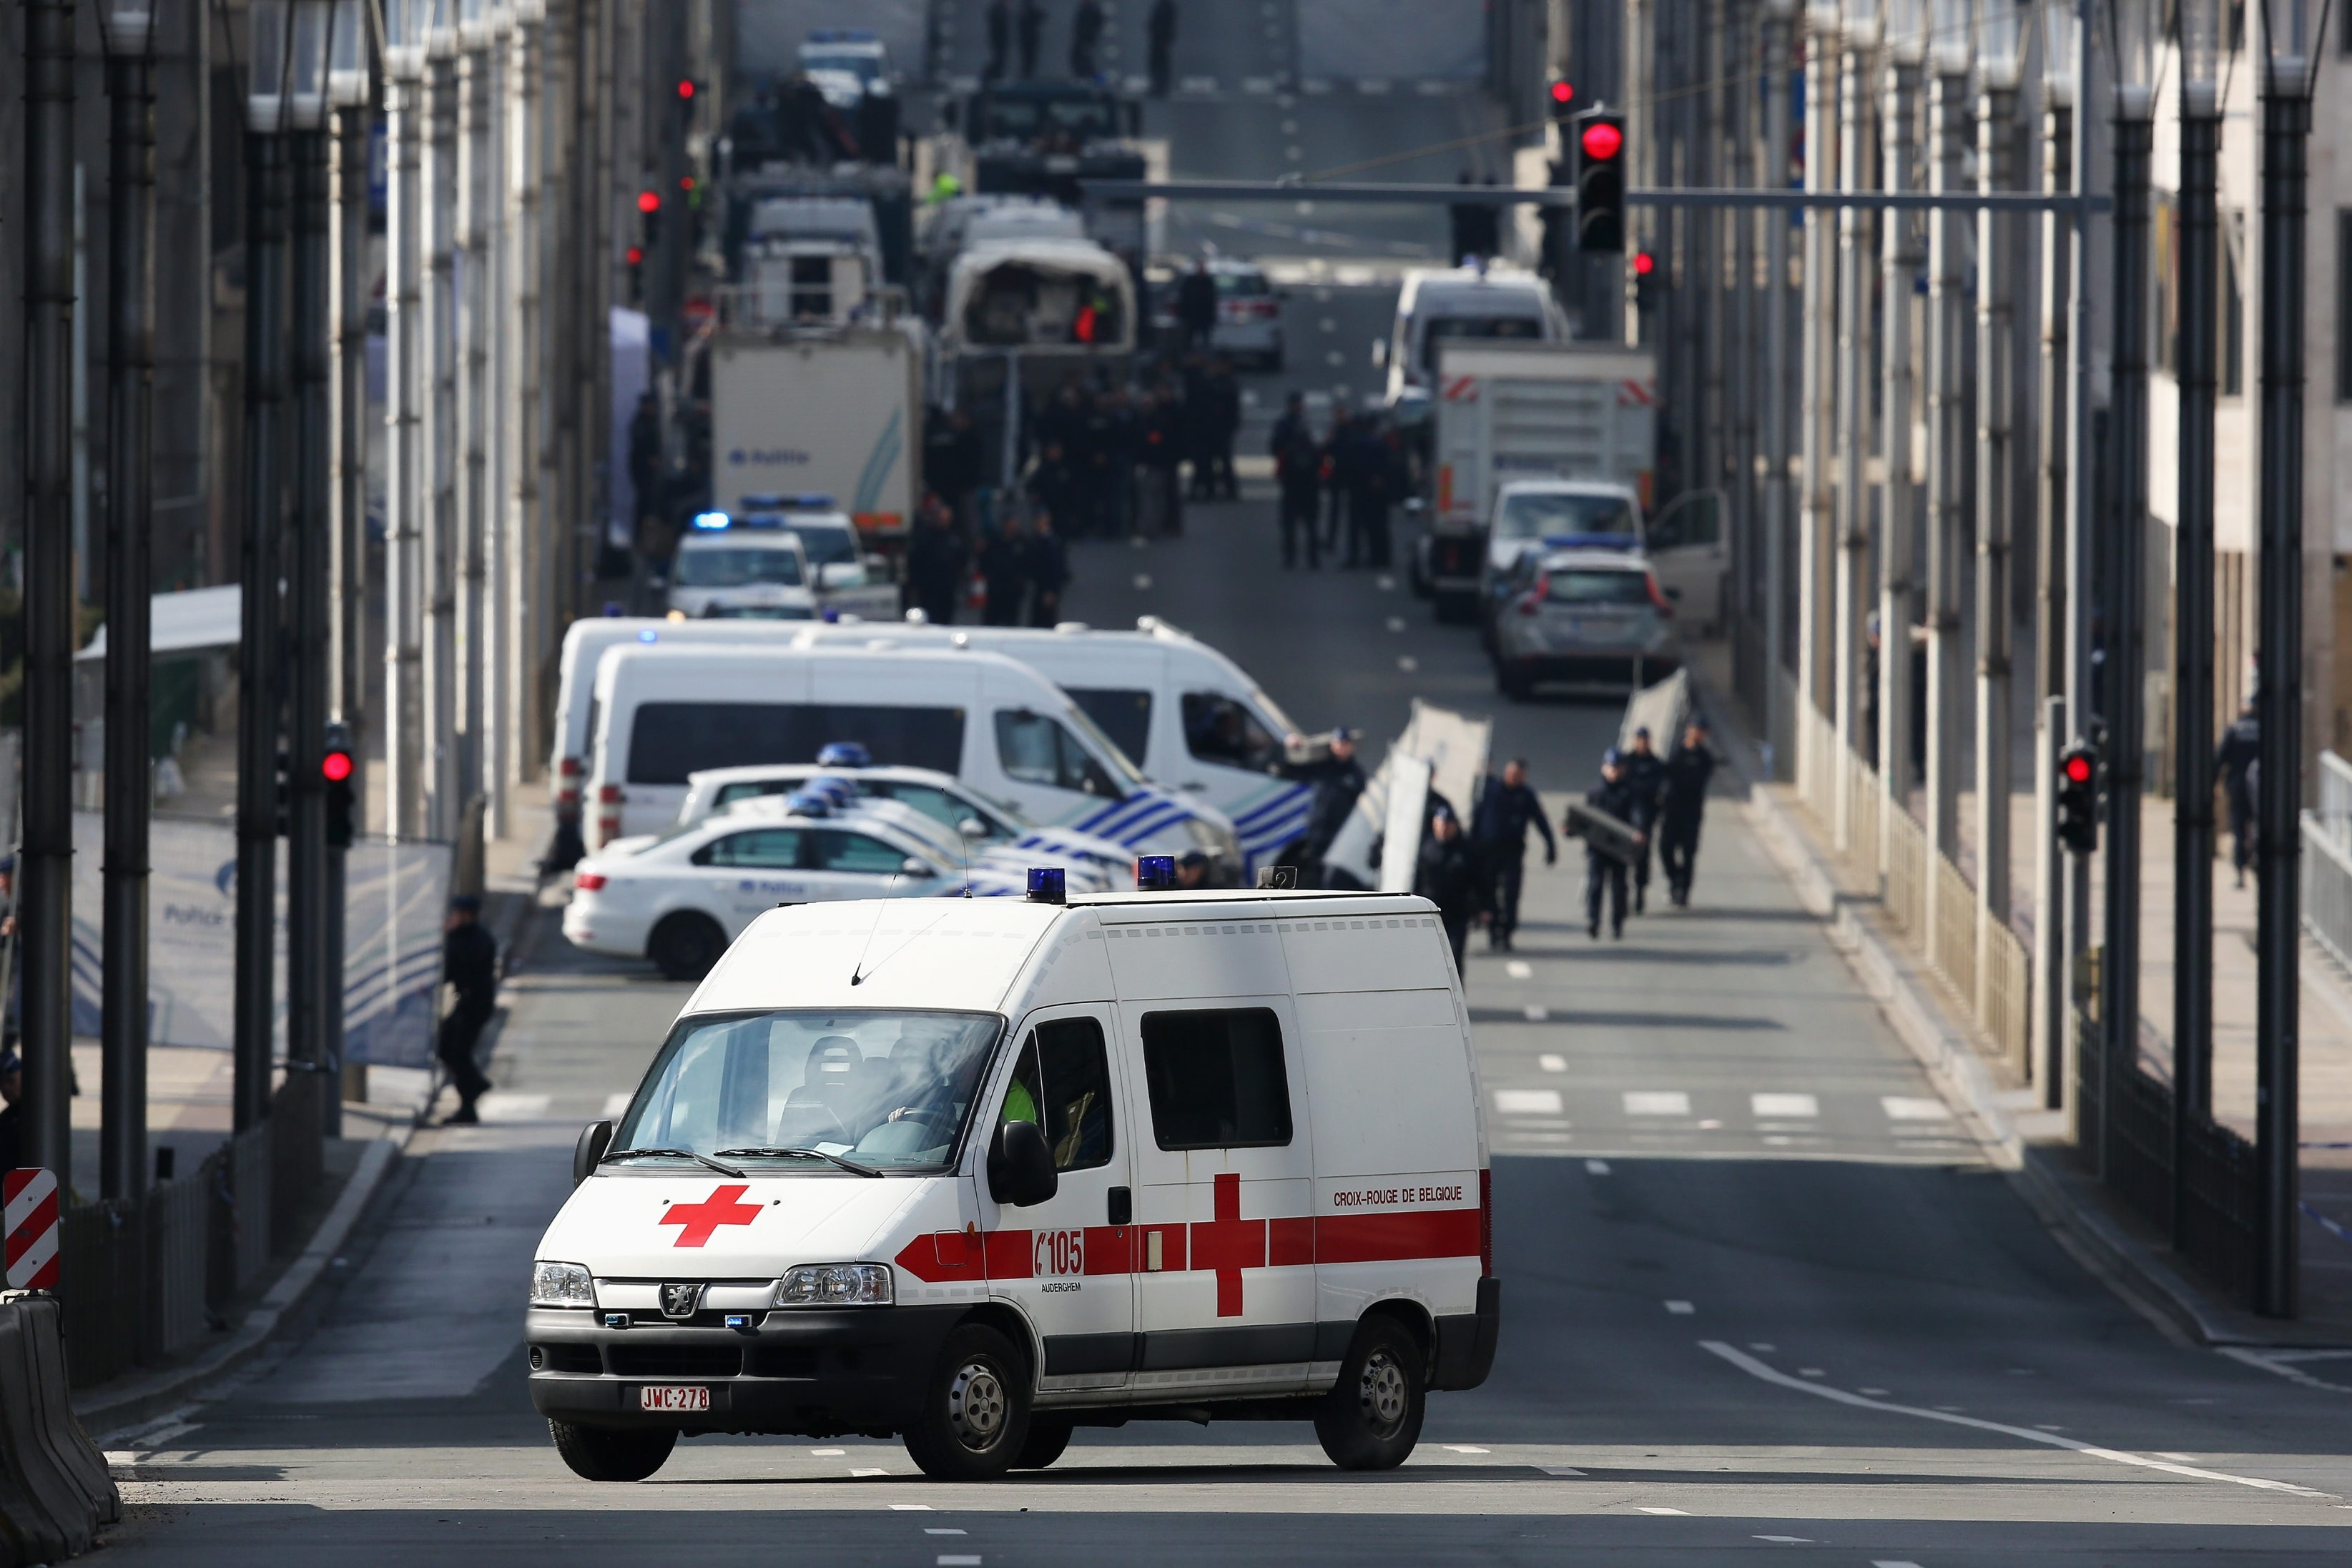 Soldiers, police officers and medical personnel at the Maelbeek metro station following Tuesday's attacks in Brussels, Belgium. (Getty Images)